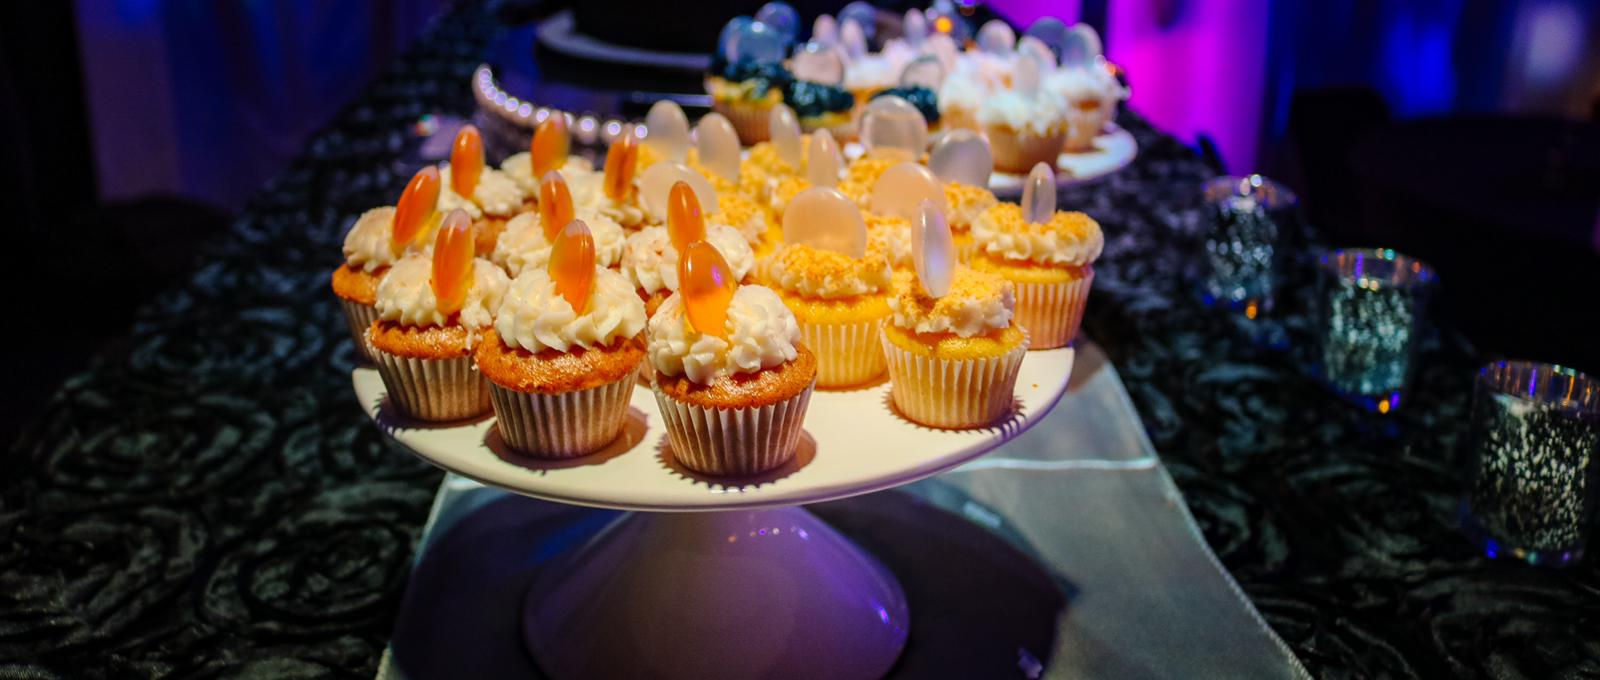 A lot of yellow cupcakes on a round white plate